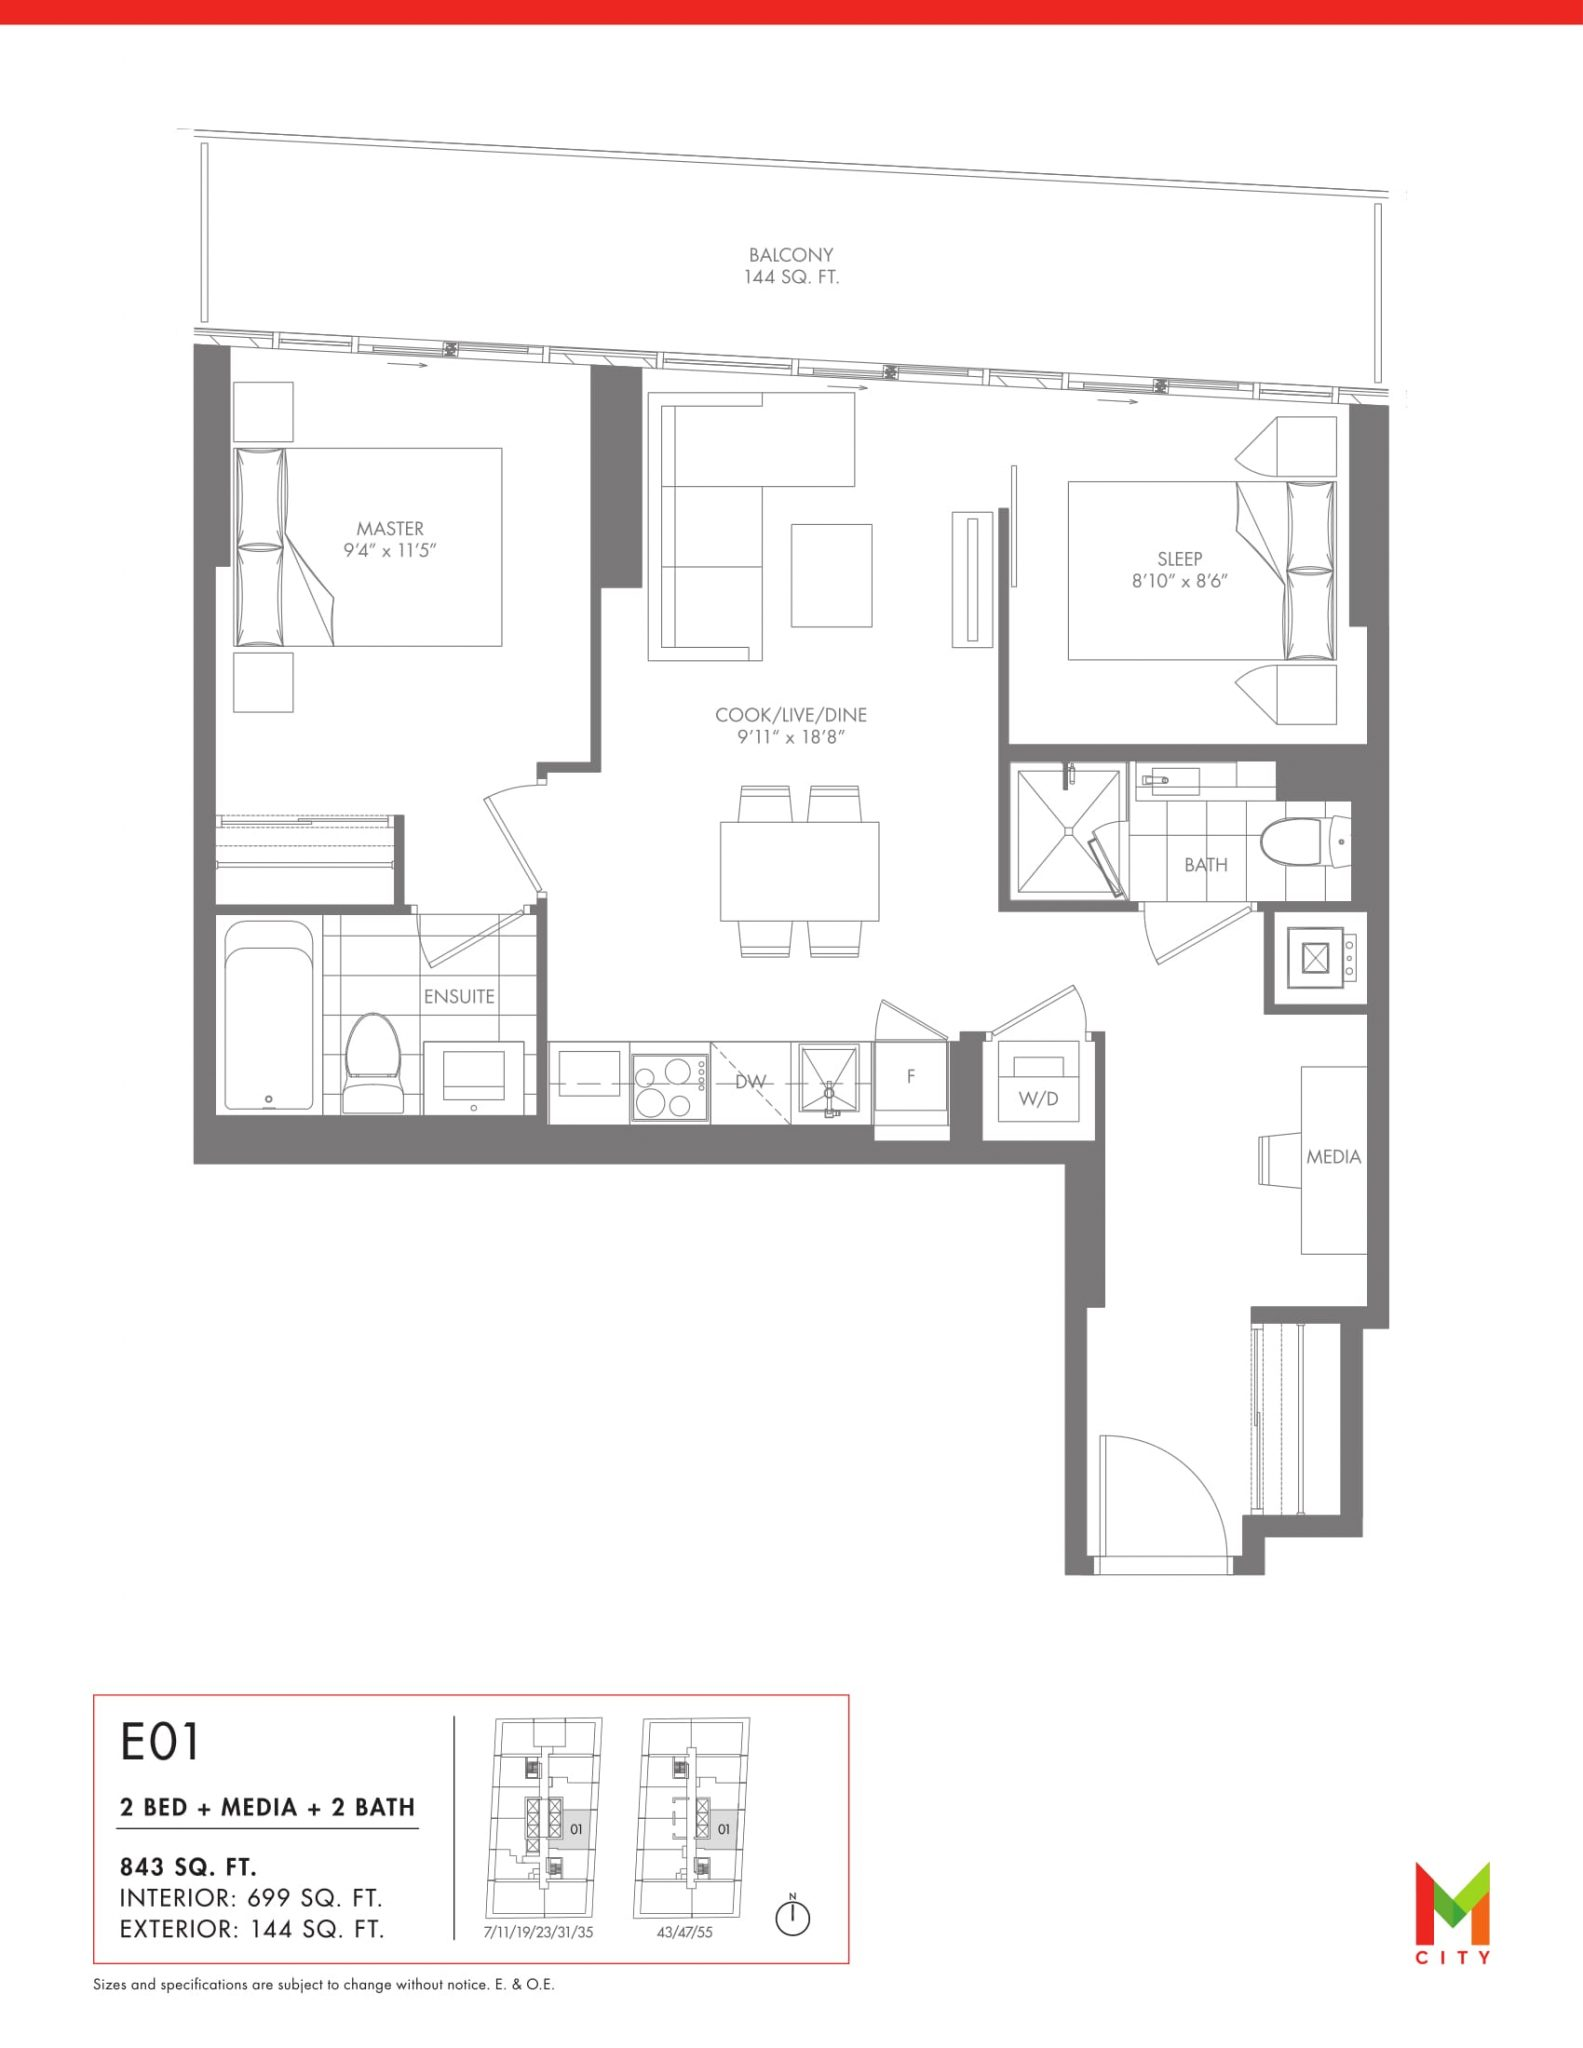 M city condos for sale prices and floorplans for My floor planner